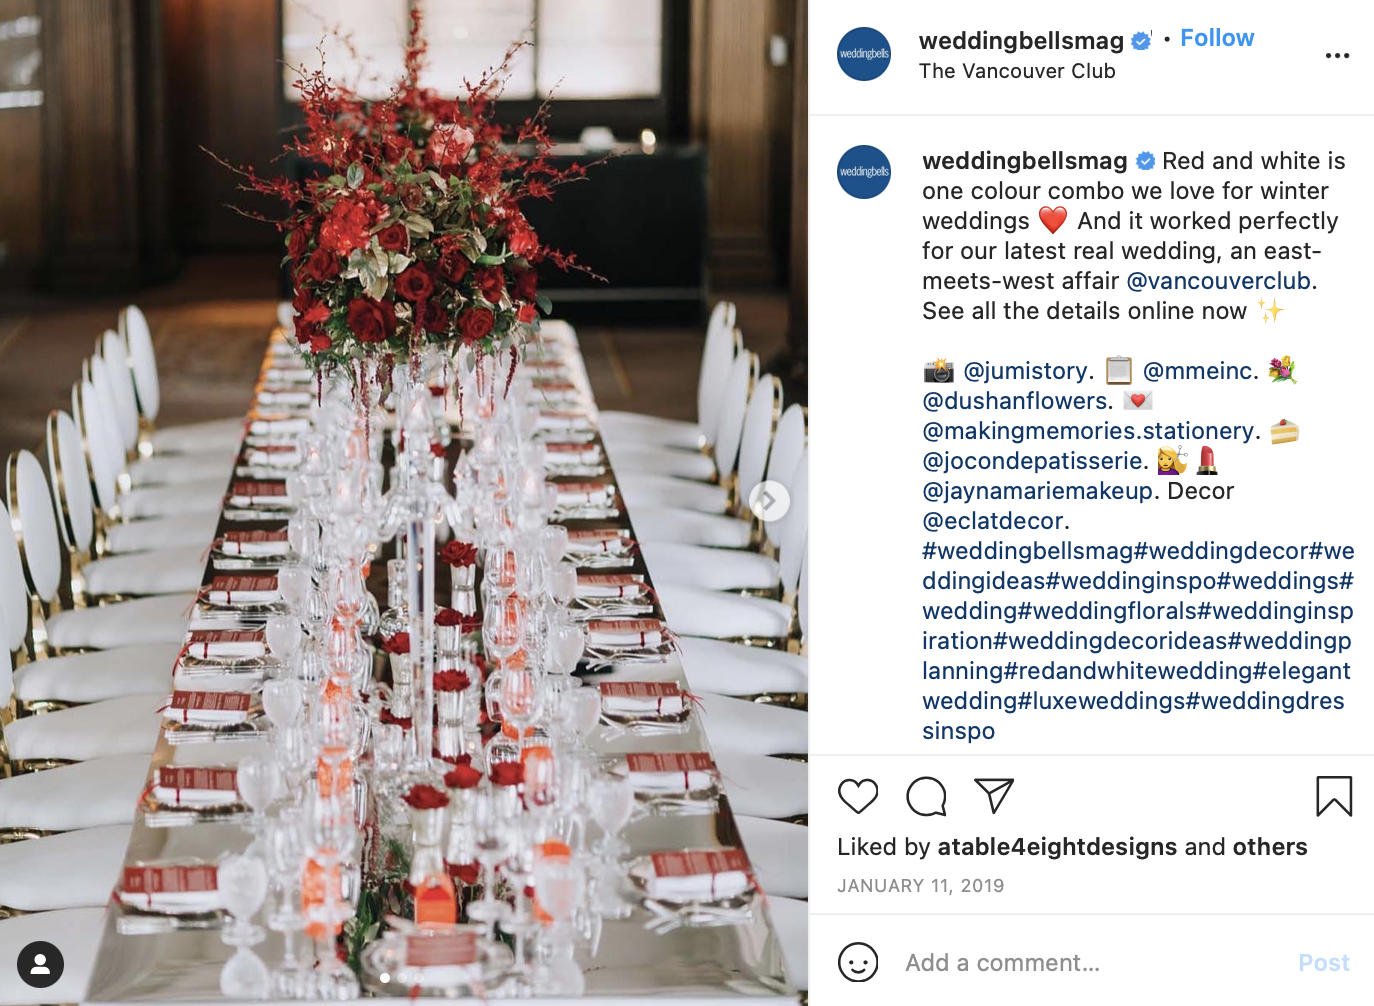 photo of white and red tones at the head table